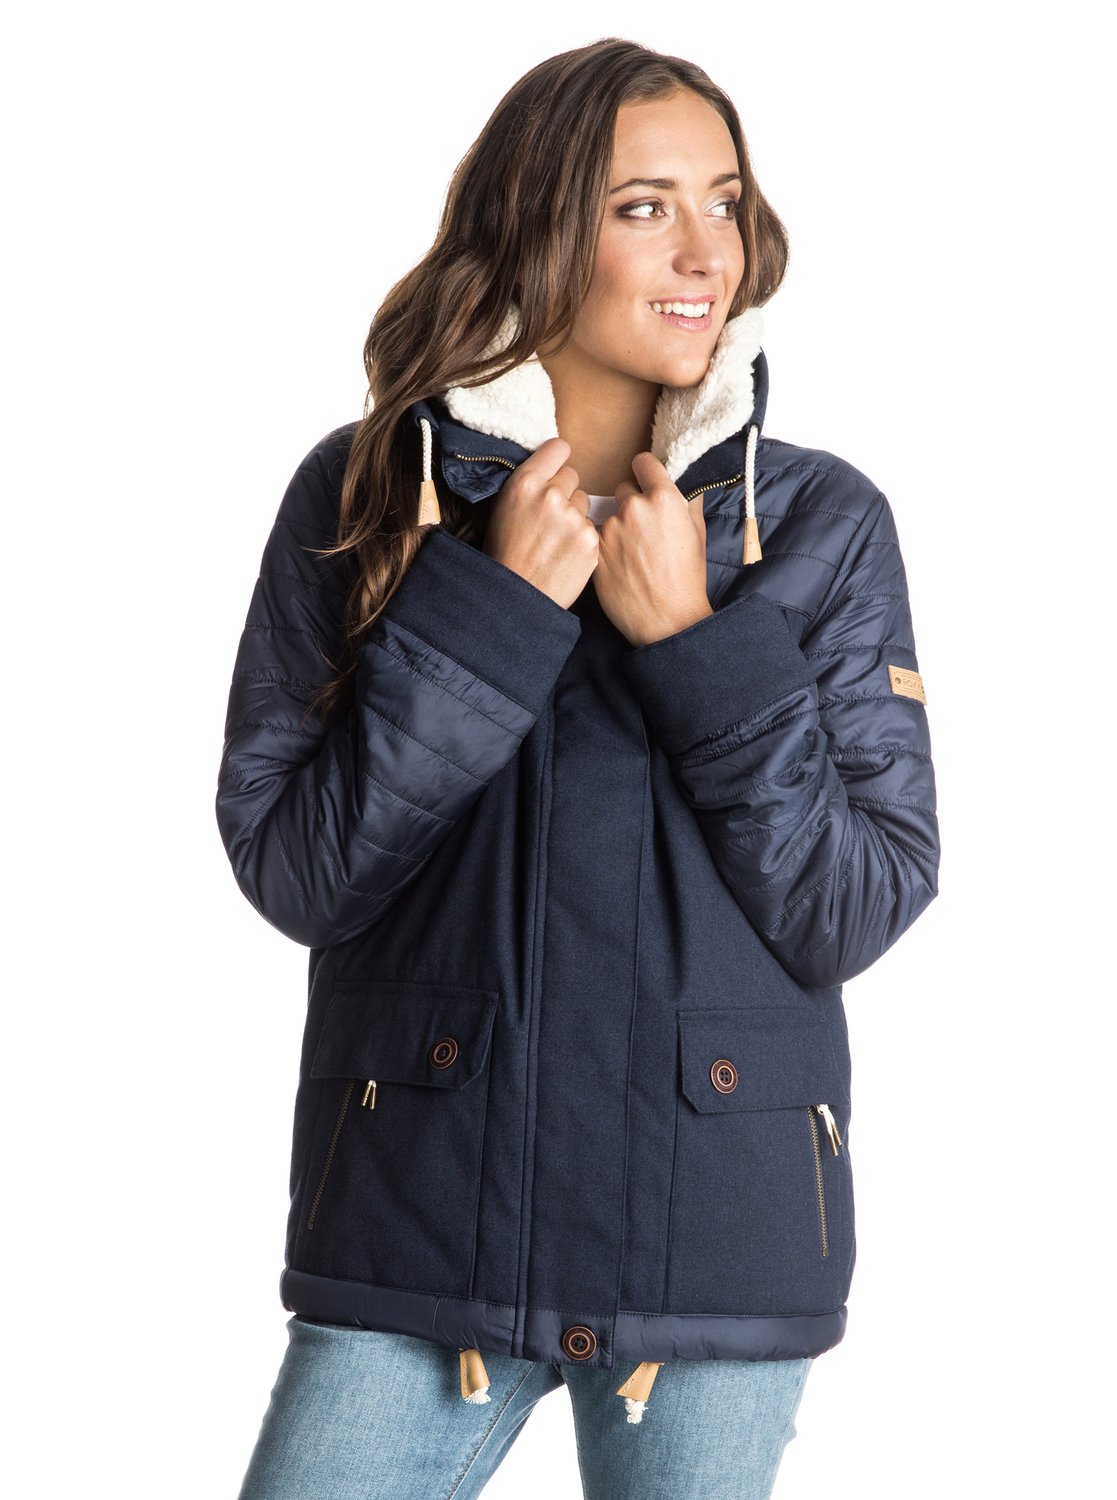 Jasmin - JacketJasmin - Cold Weather Jacket for Women. Off the mountain and straight into the city. ROXY Cold Weather jackets bring the best of the powder to the streets. Marrying premium technical fabrics and superior warmth with fashion-forward silhouettes. Featuring ROXY Dry Flight technology and 3M Thinsulate® Featherless Insulation to keep you warm and dry. Because we know cold weather doesn't just happen on the slopes.<br>